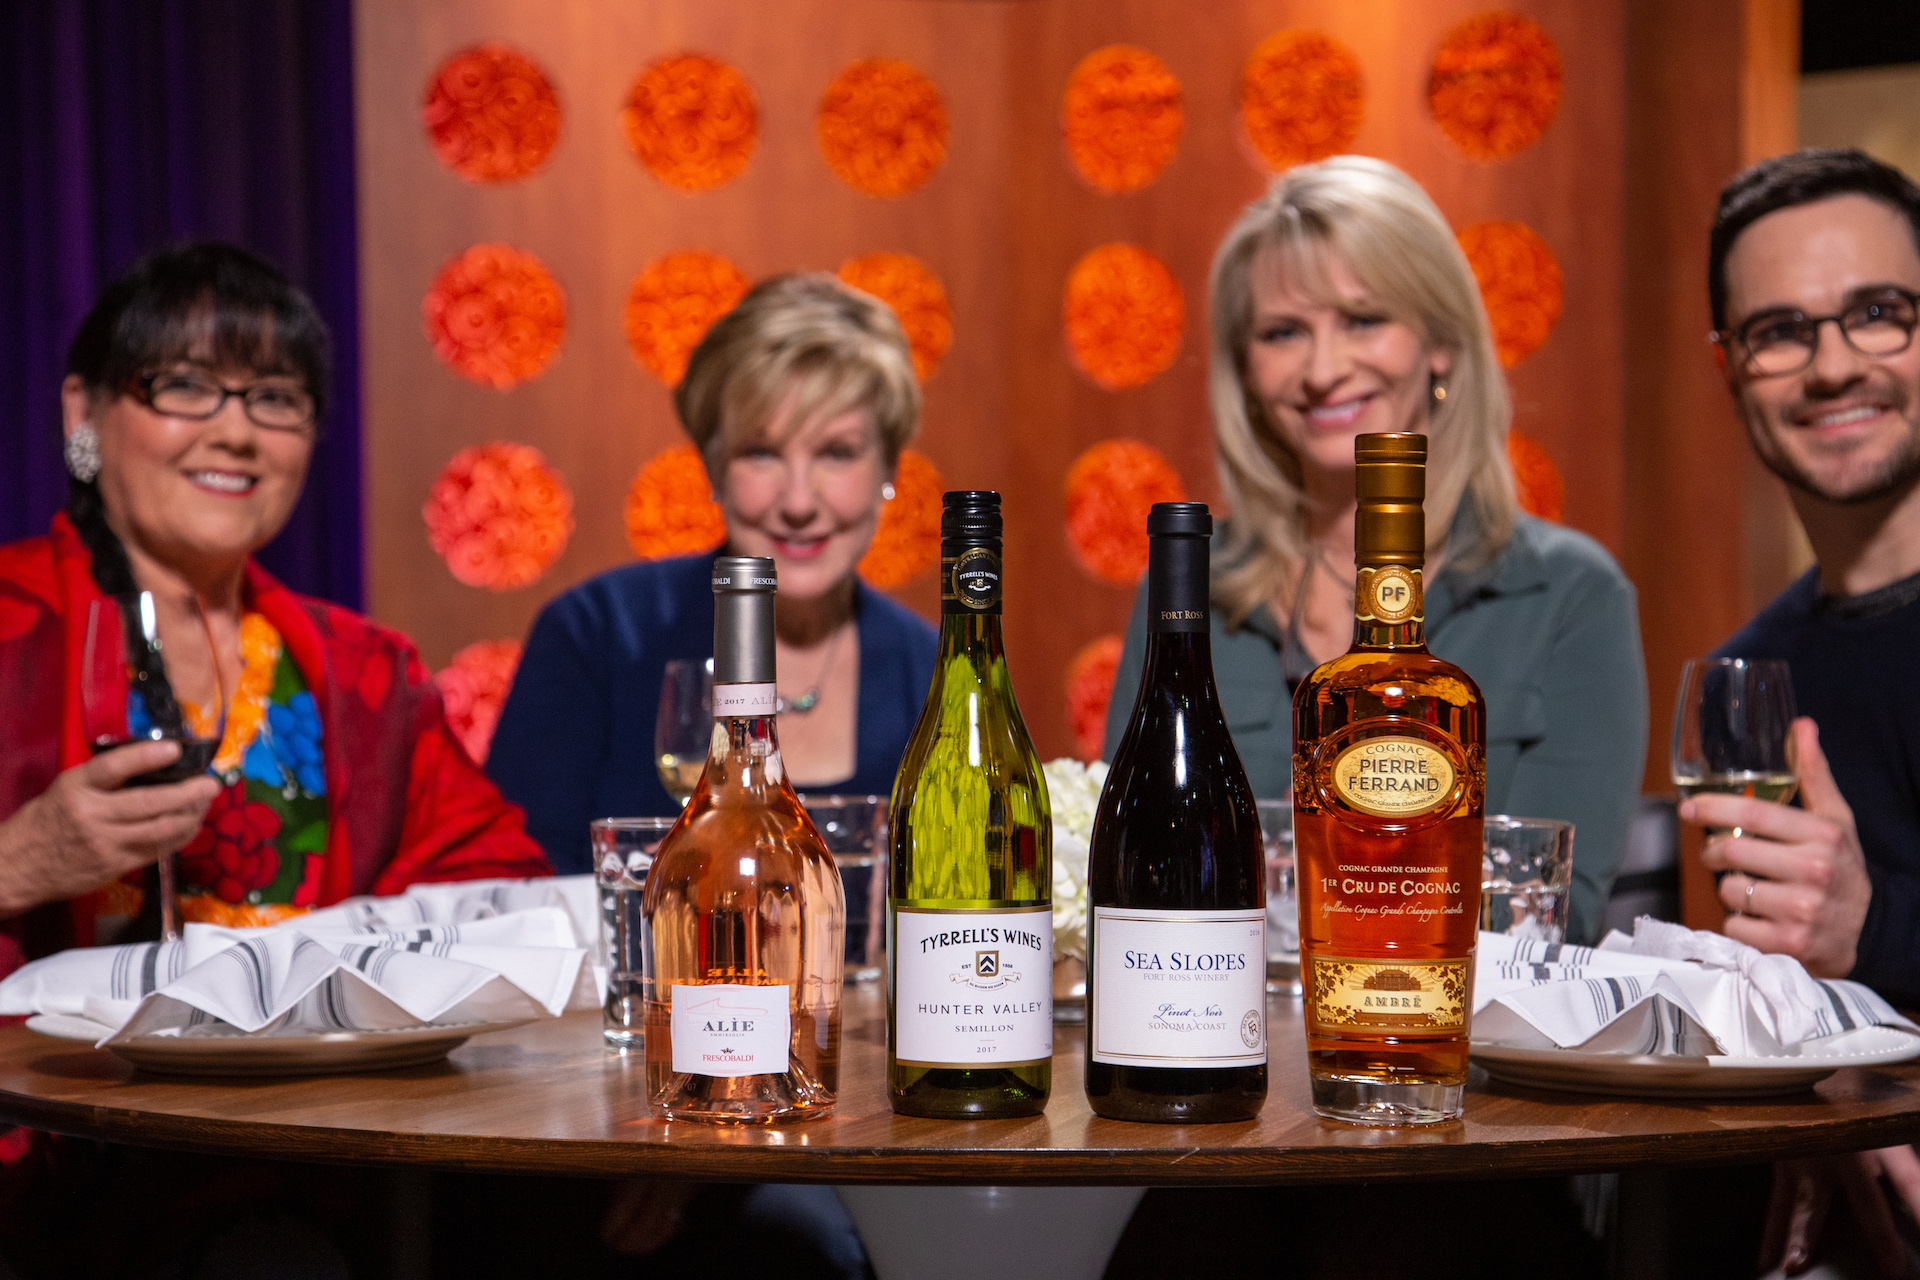 Wine and spirits that guests drank on the set of season 14 episode 5.